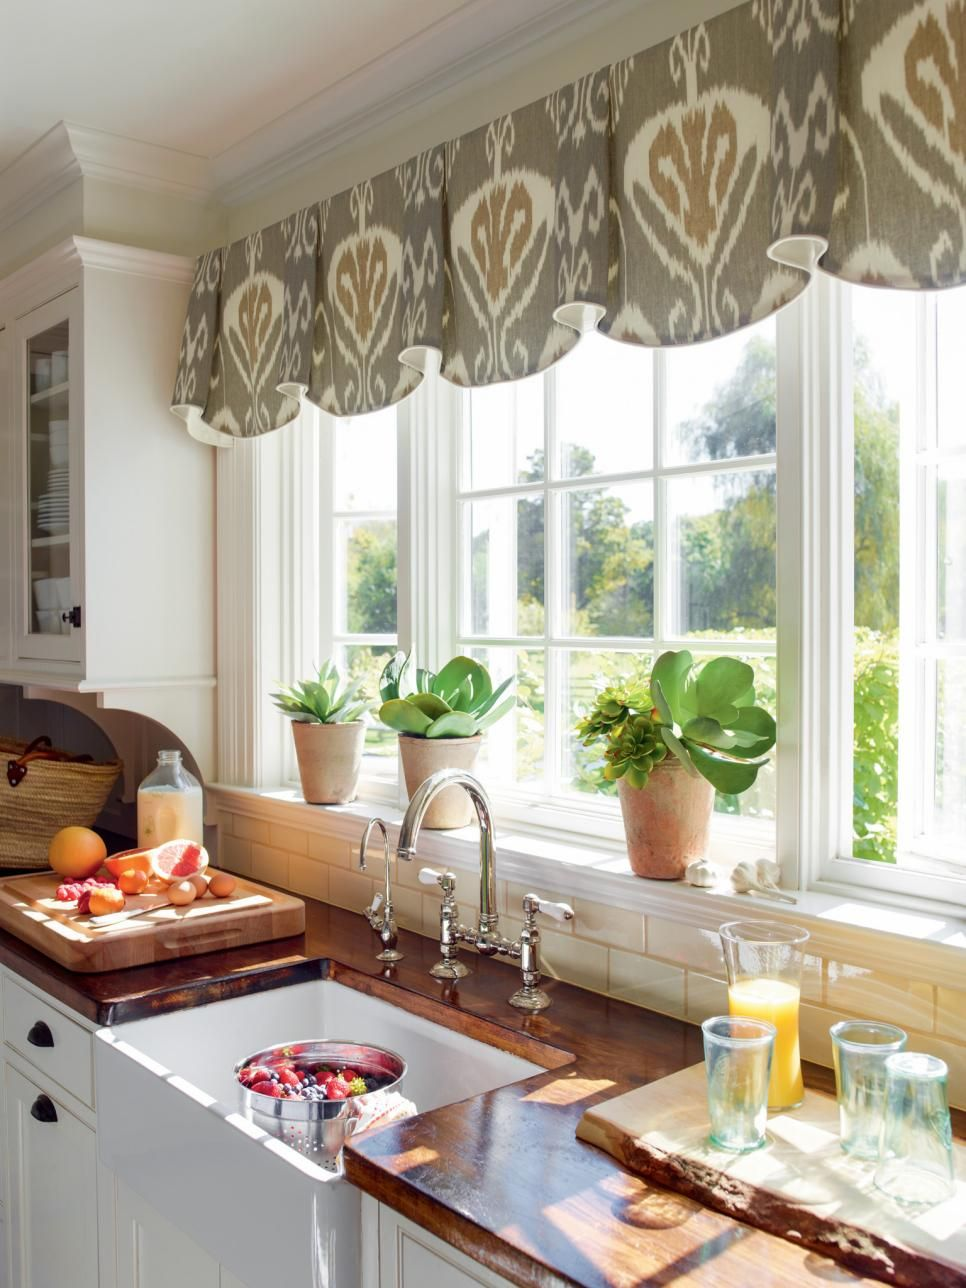 Kitchen Valance Ideas Captivating 10 Stylish Kitchen Window Treatment Ideas  Ikat Pattern Valances . Inspiration